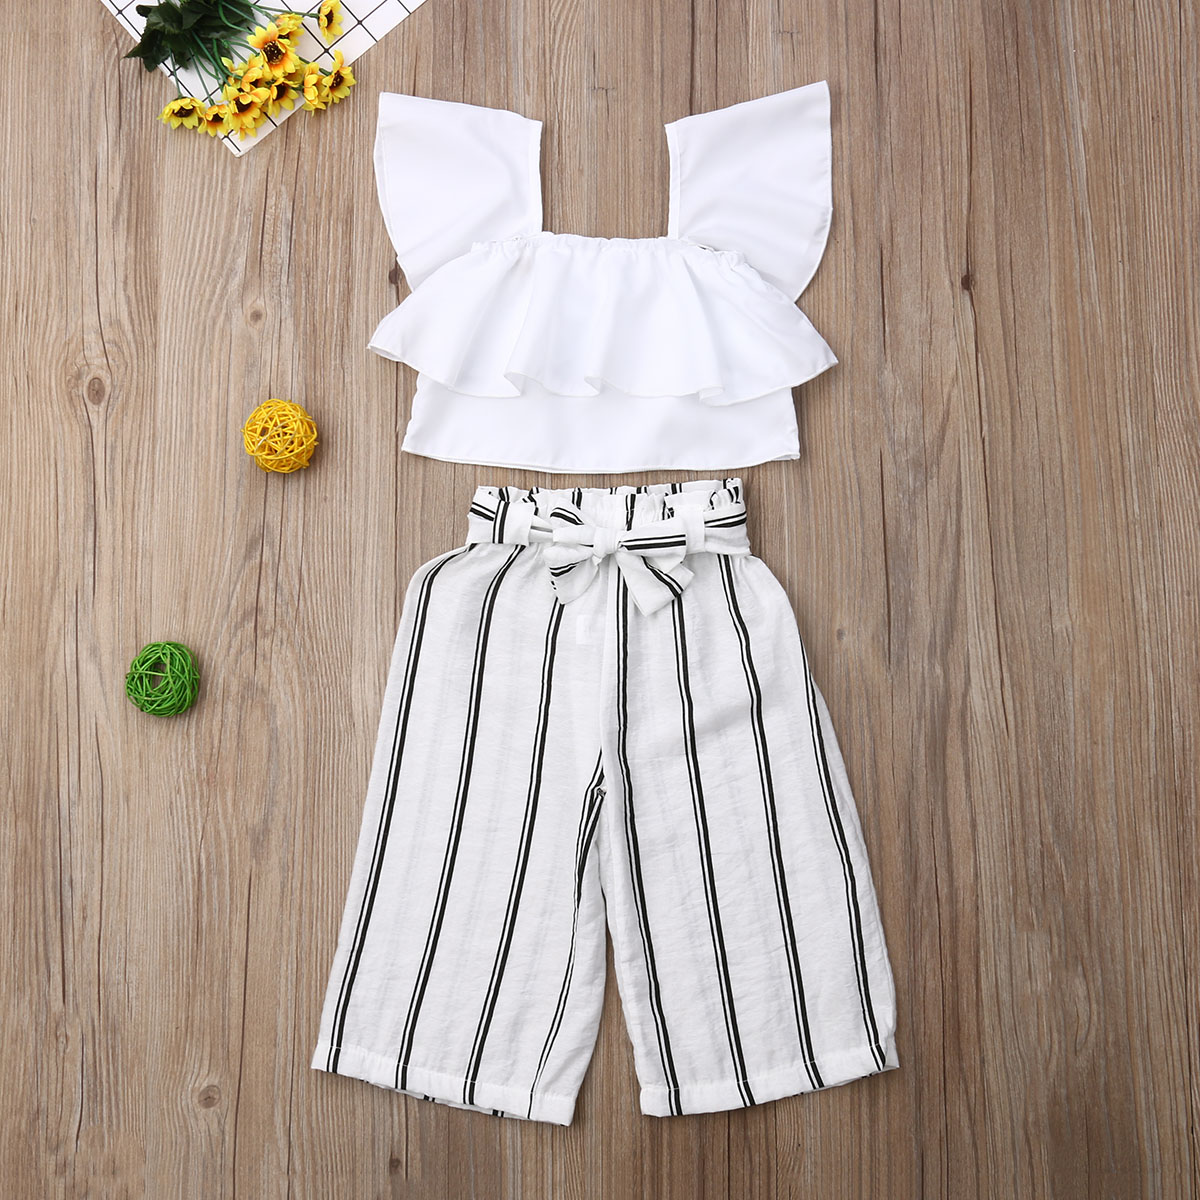 Pudcoco Summer Toddler Baby Girl Clothes Fly Sleeve Ruffle Crop Tops Striped Long Pants 2Pcs Outfits Casual Clothes Summer